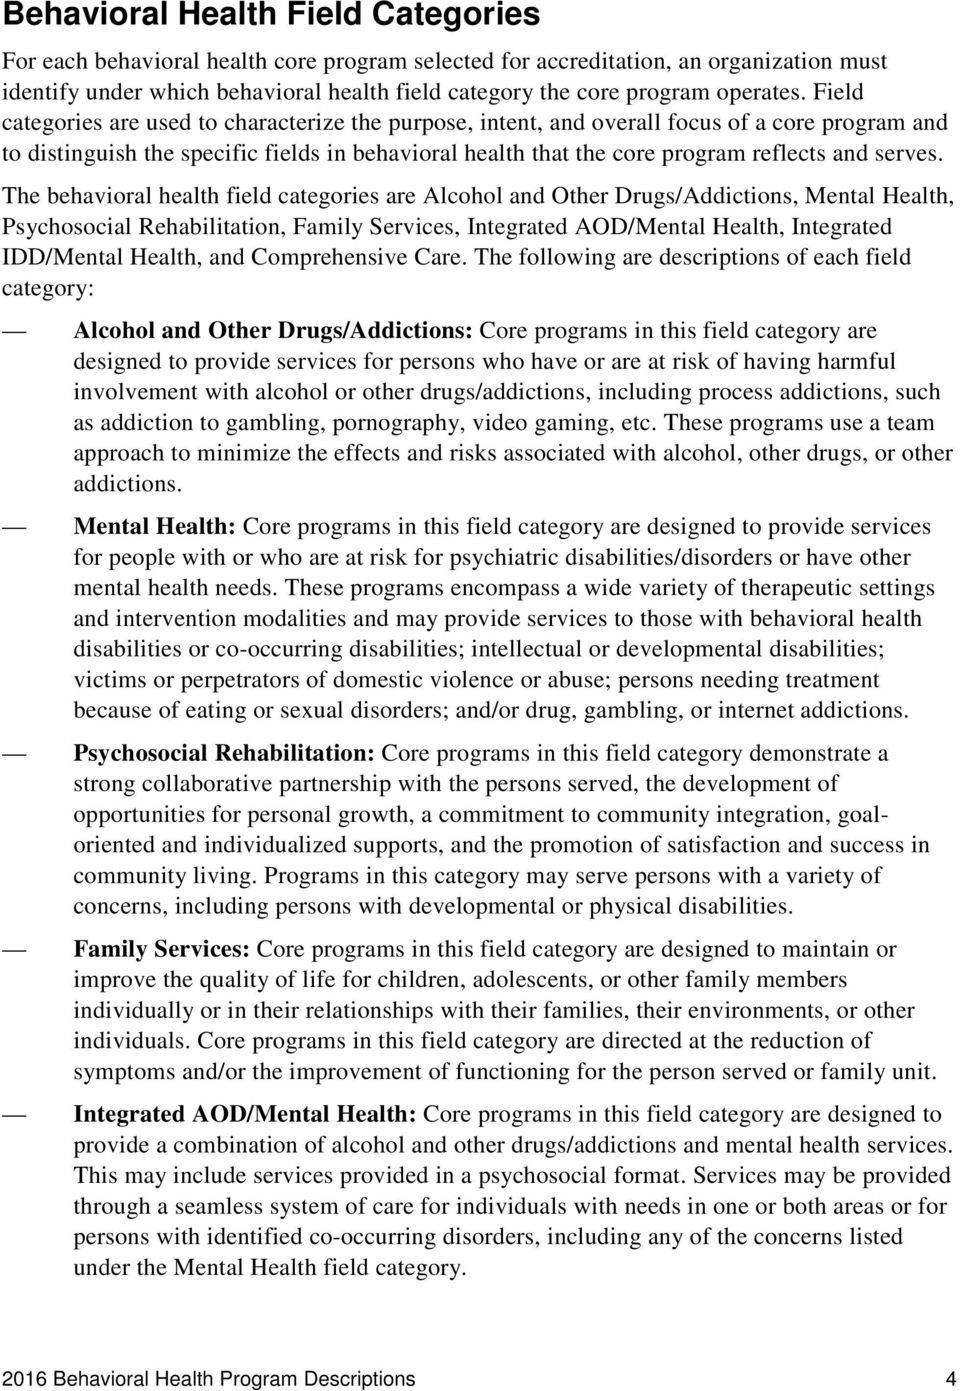 Field categories are used to characterize the purpose, intent, and overall focus of a core program and to distinguish the specific fields in behavioral health that the core program reflects and